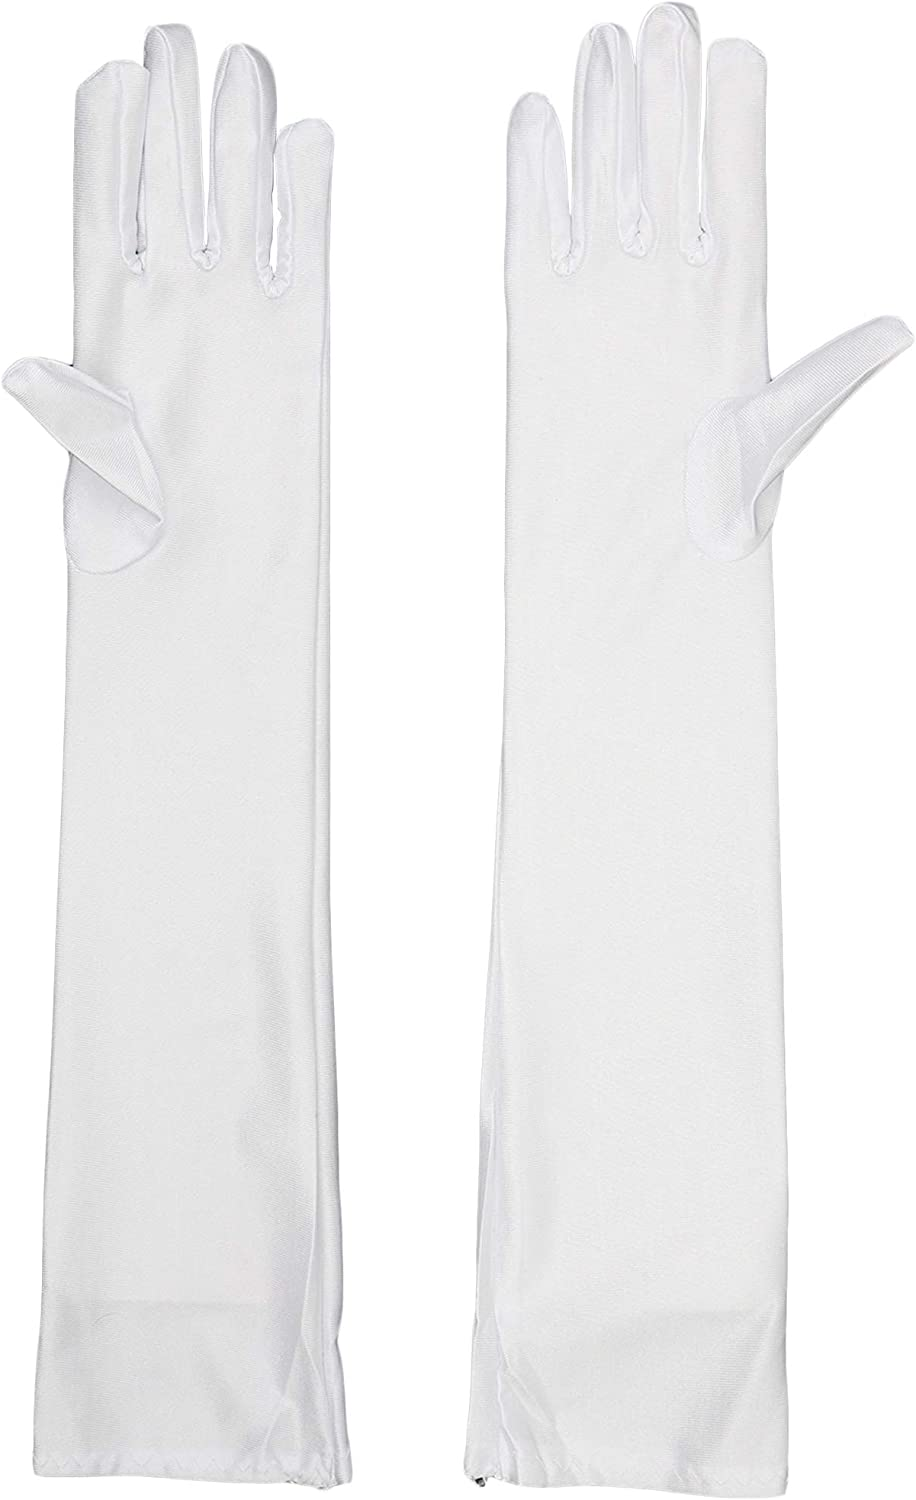 White Satin Opera Gloves - 1 Pair